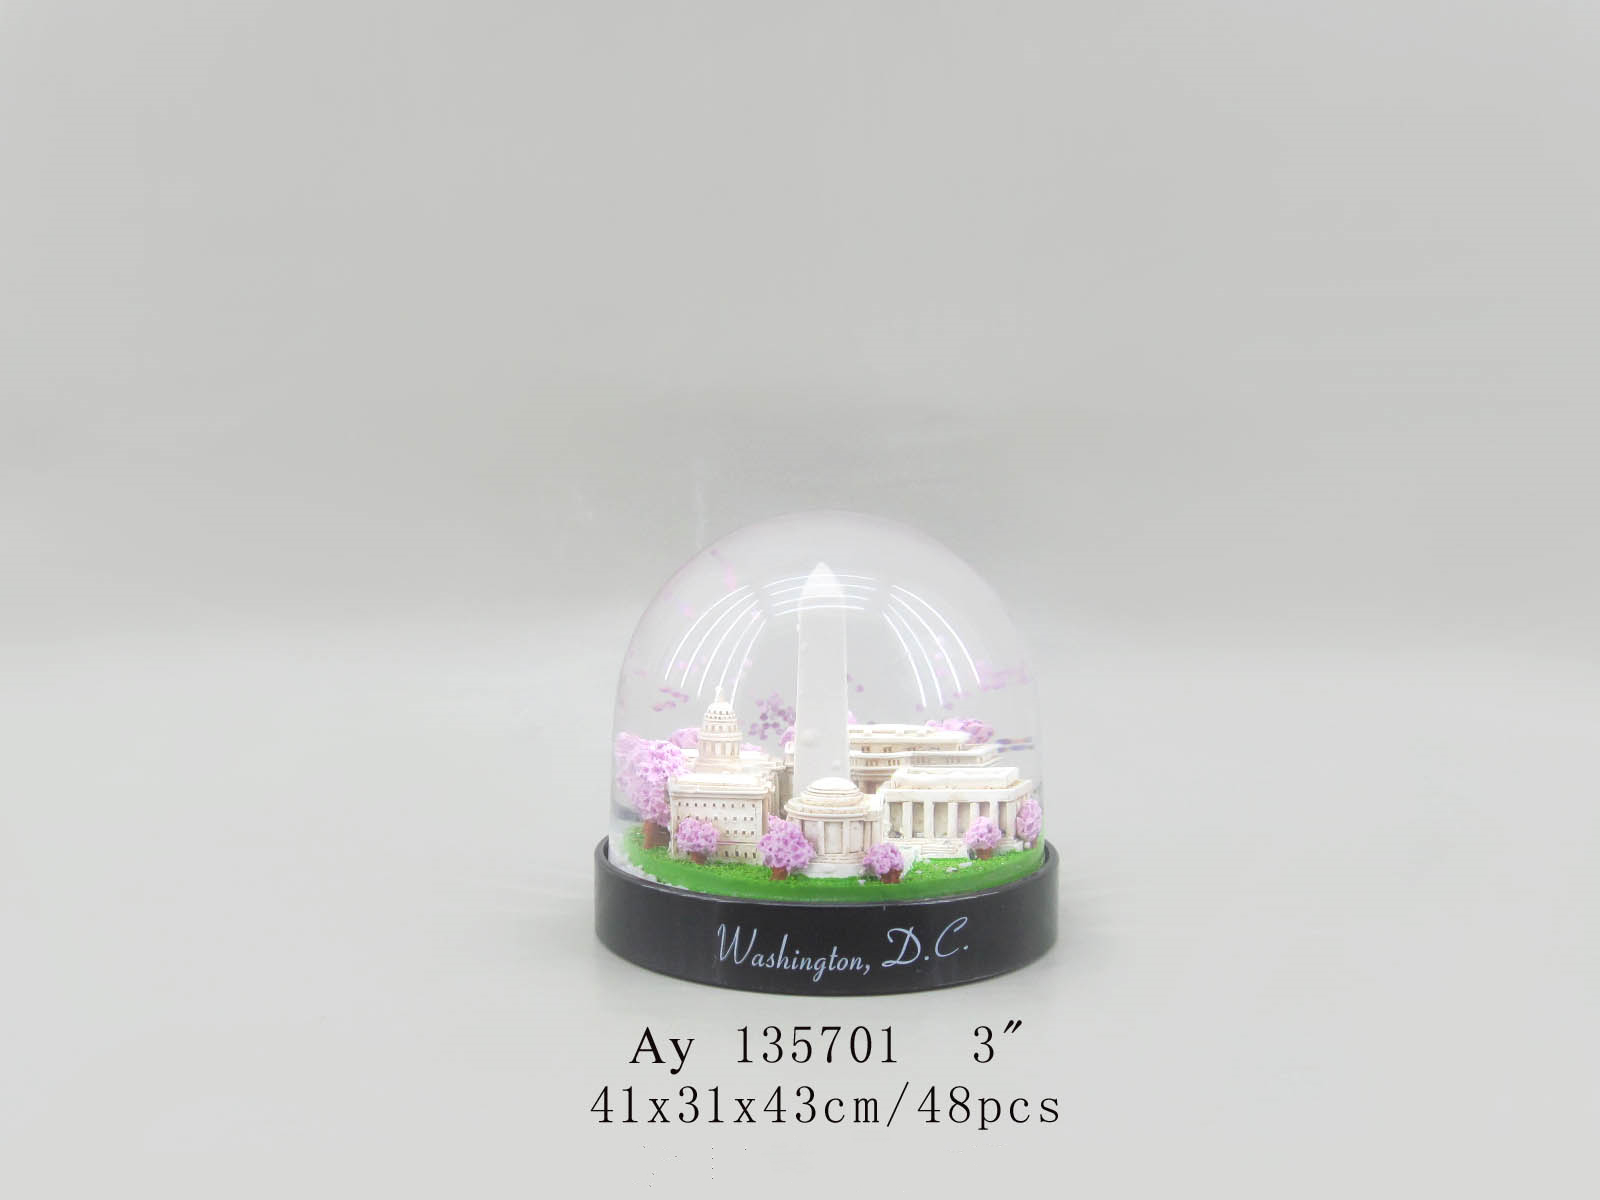 80MM Custom made ferris wheel souvenir snow globes